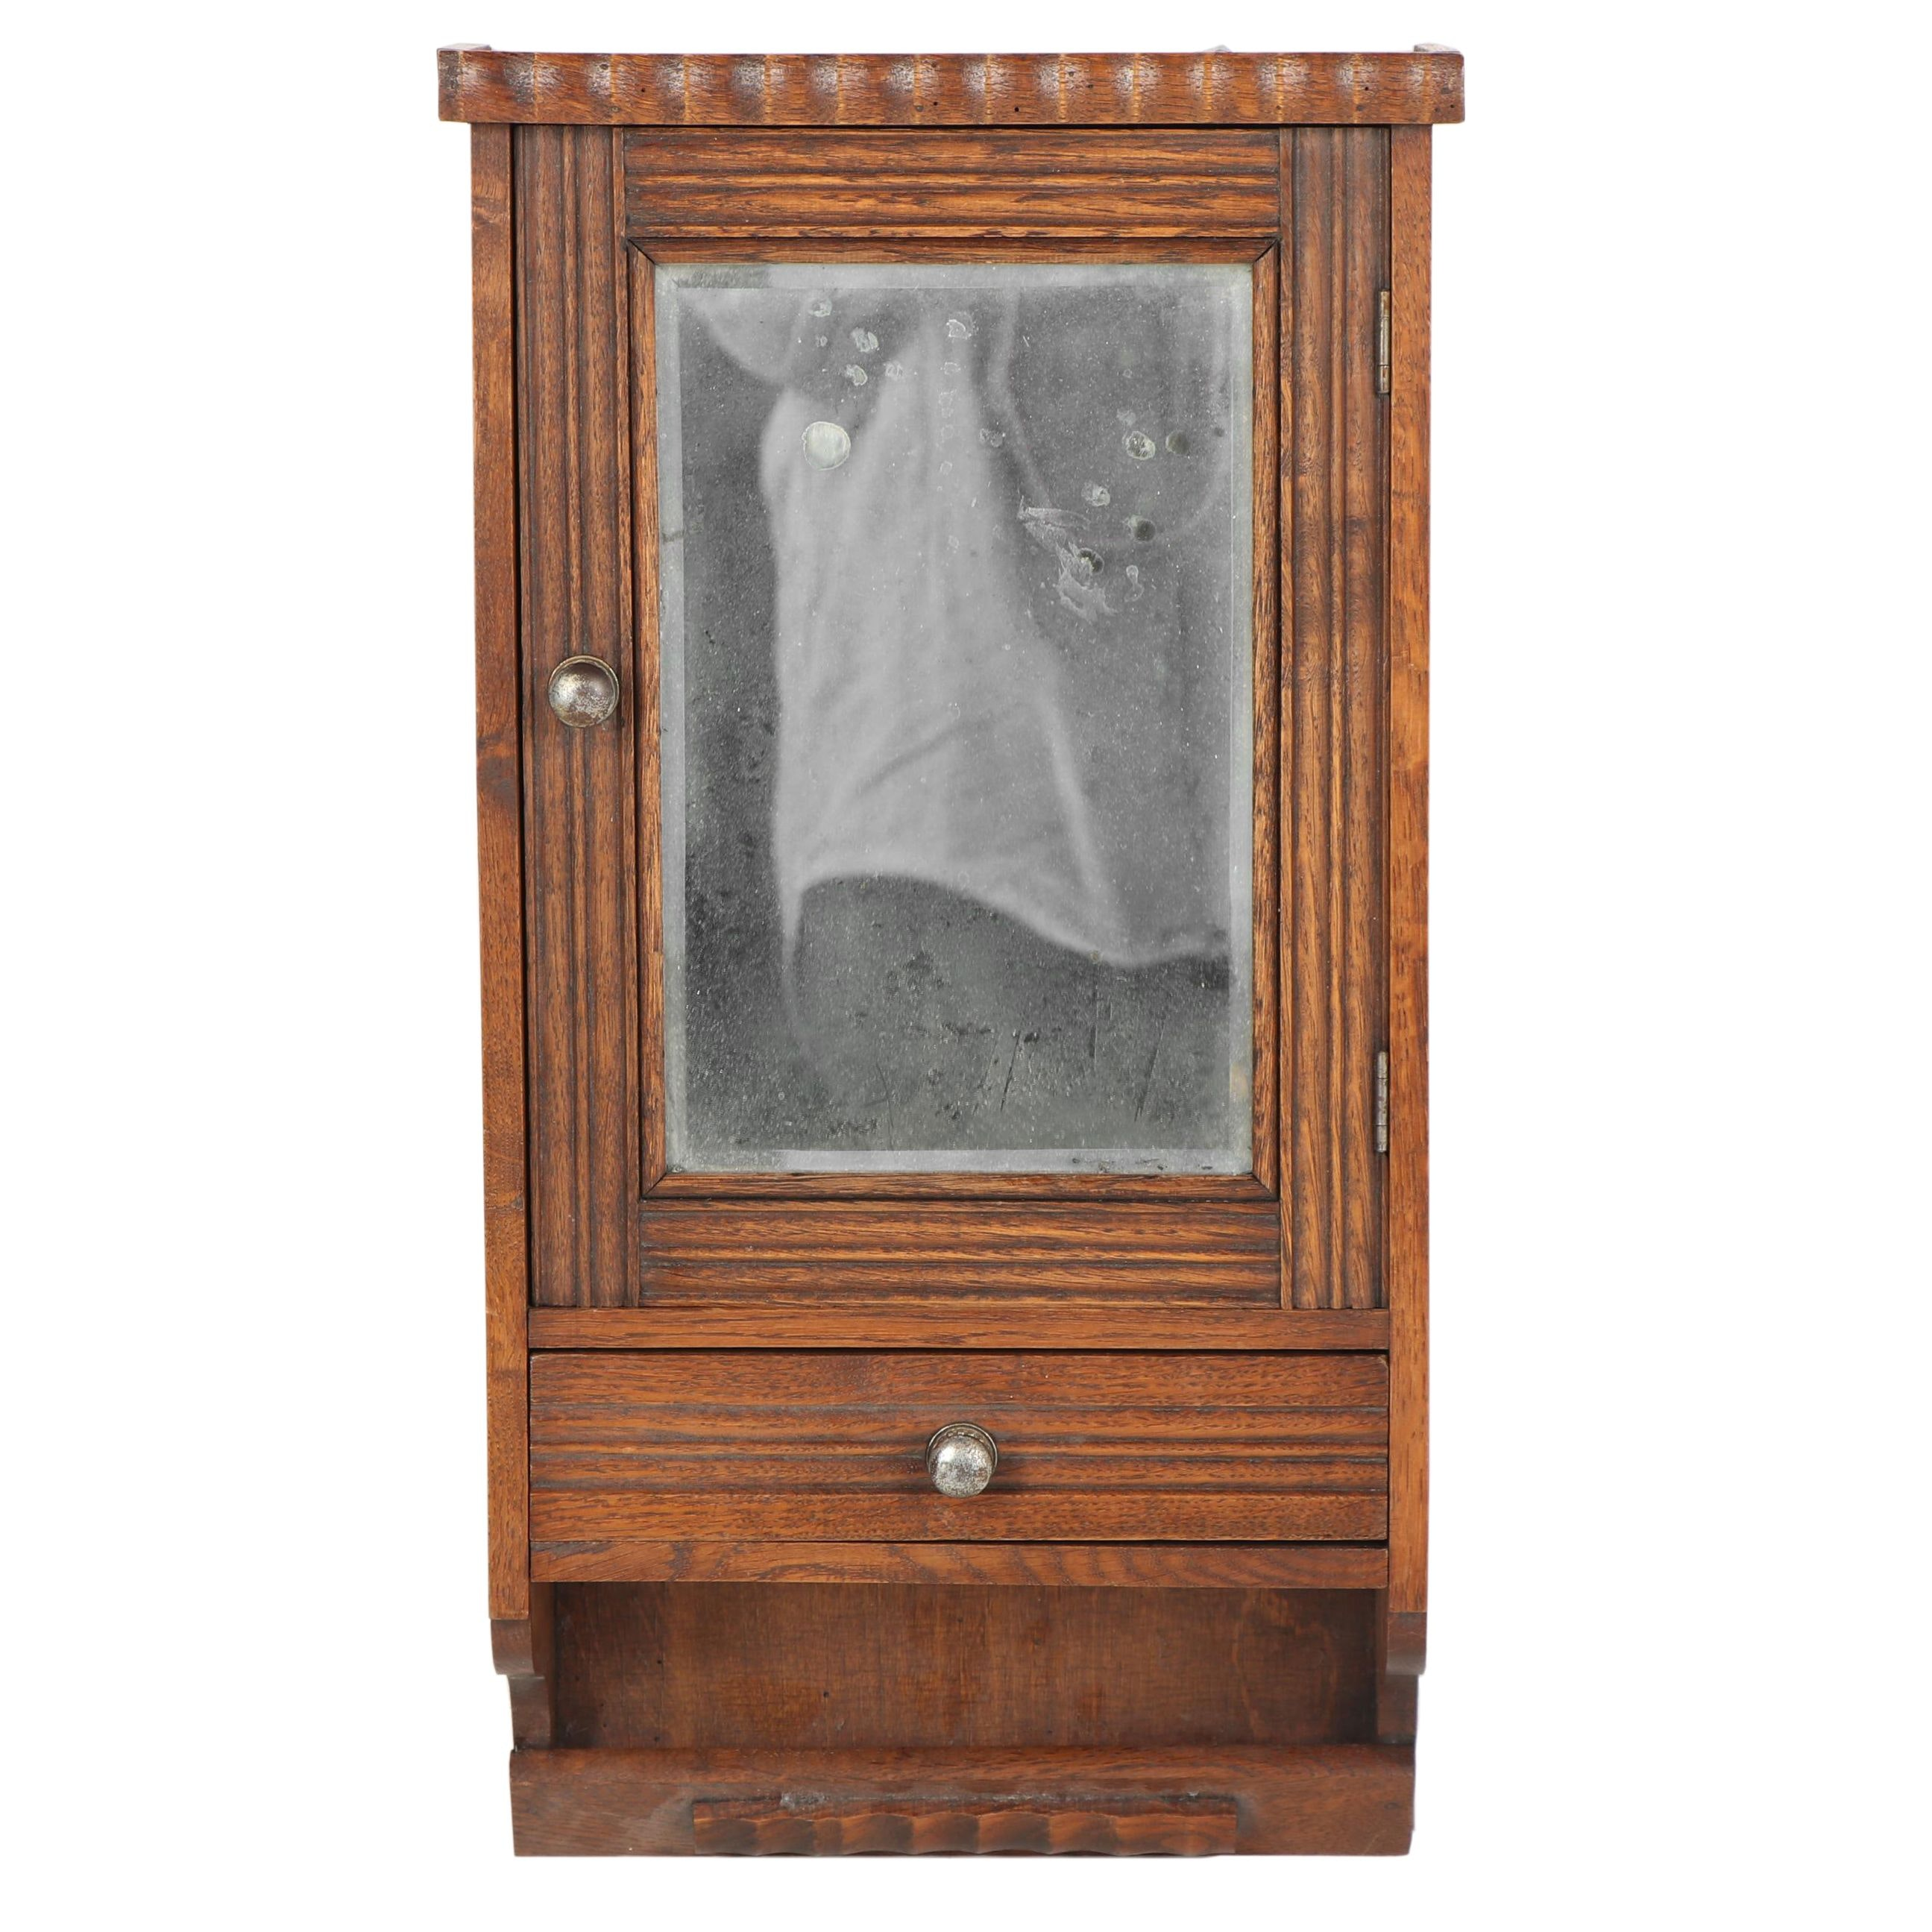 Oak Wall Cabinet with Mirror, Late 19th Century